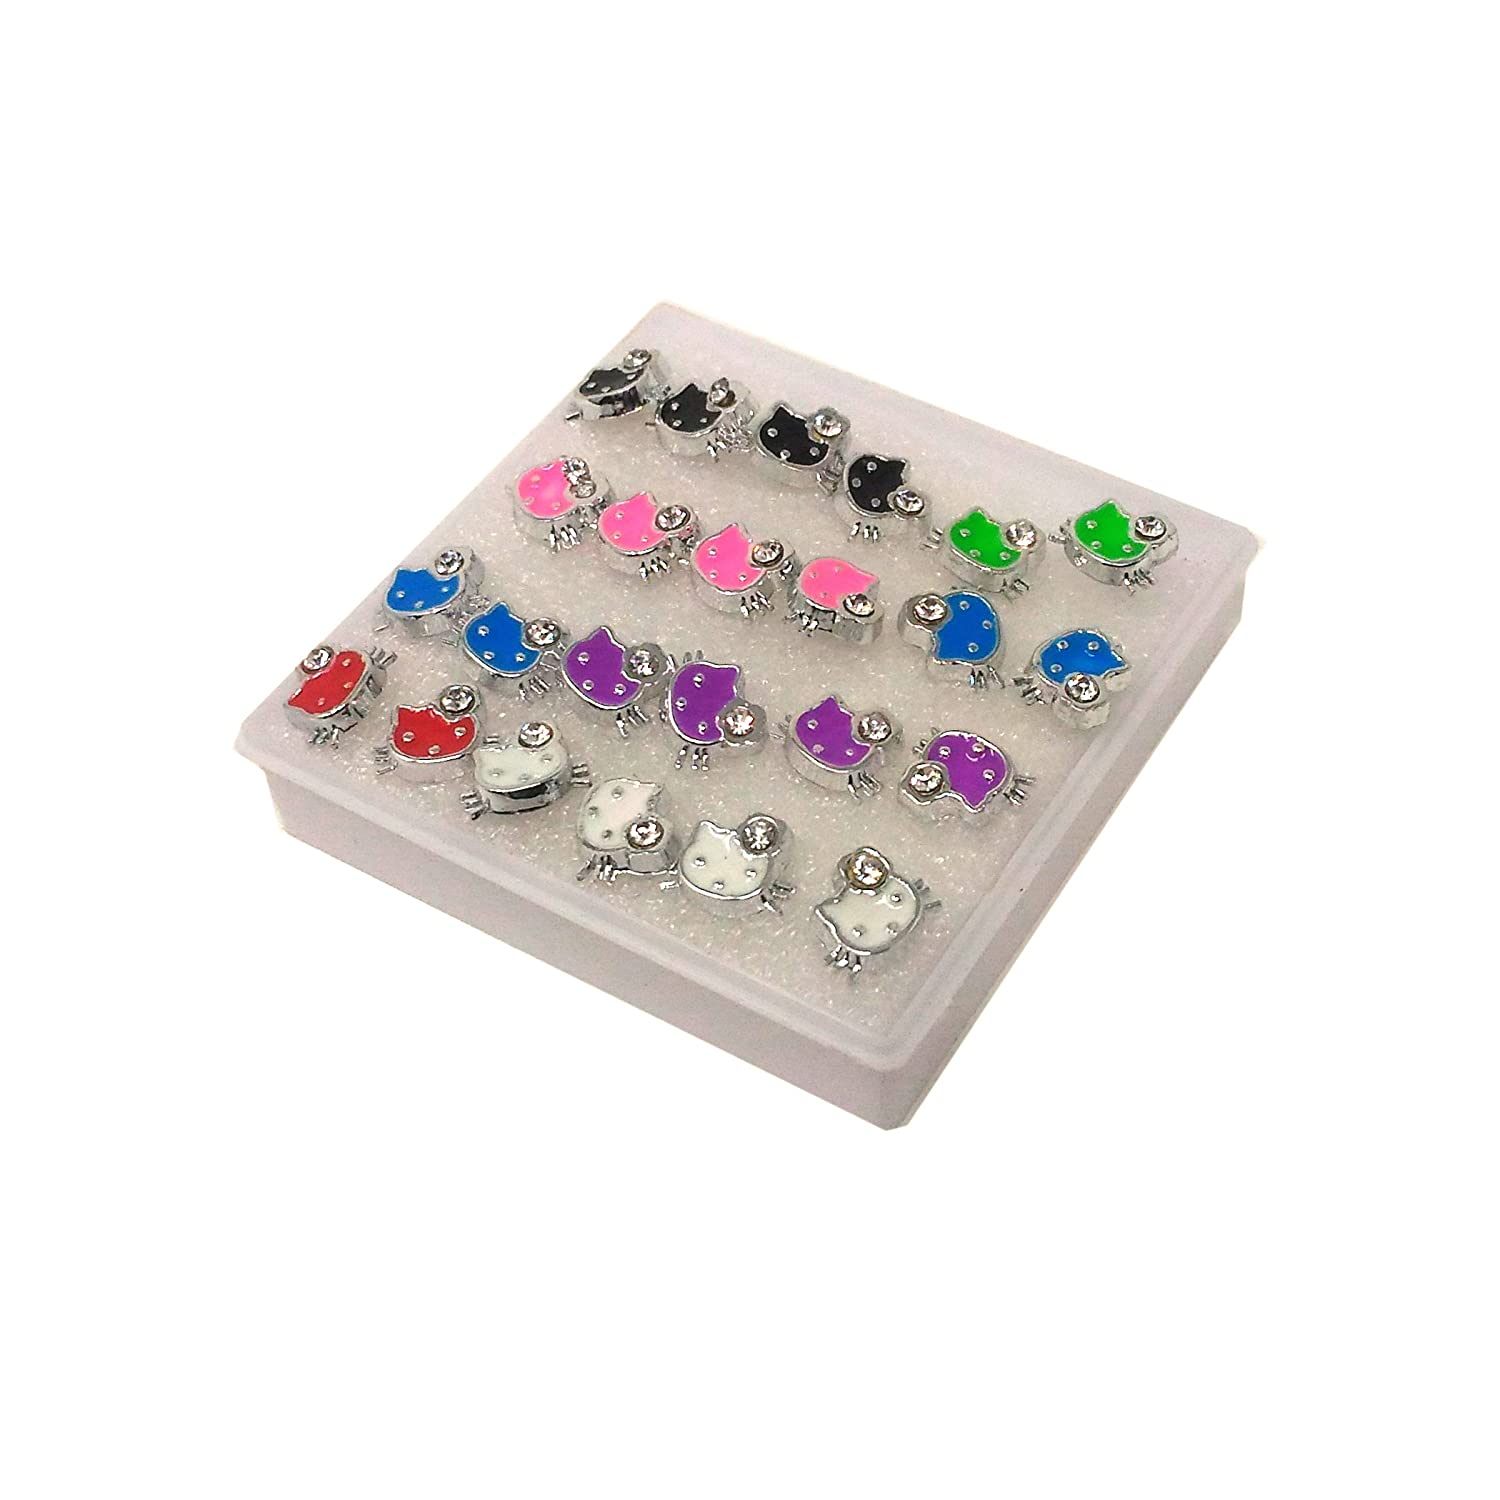 Anokhi ADA Multi-colour Rhinestone Studded Kitty Plastic Stud Earrings for Girls and Women (Pack of 12 Pairs)-(AR-13)